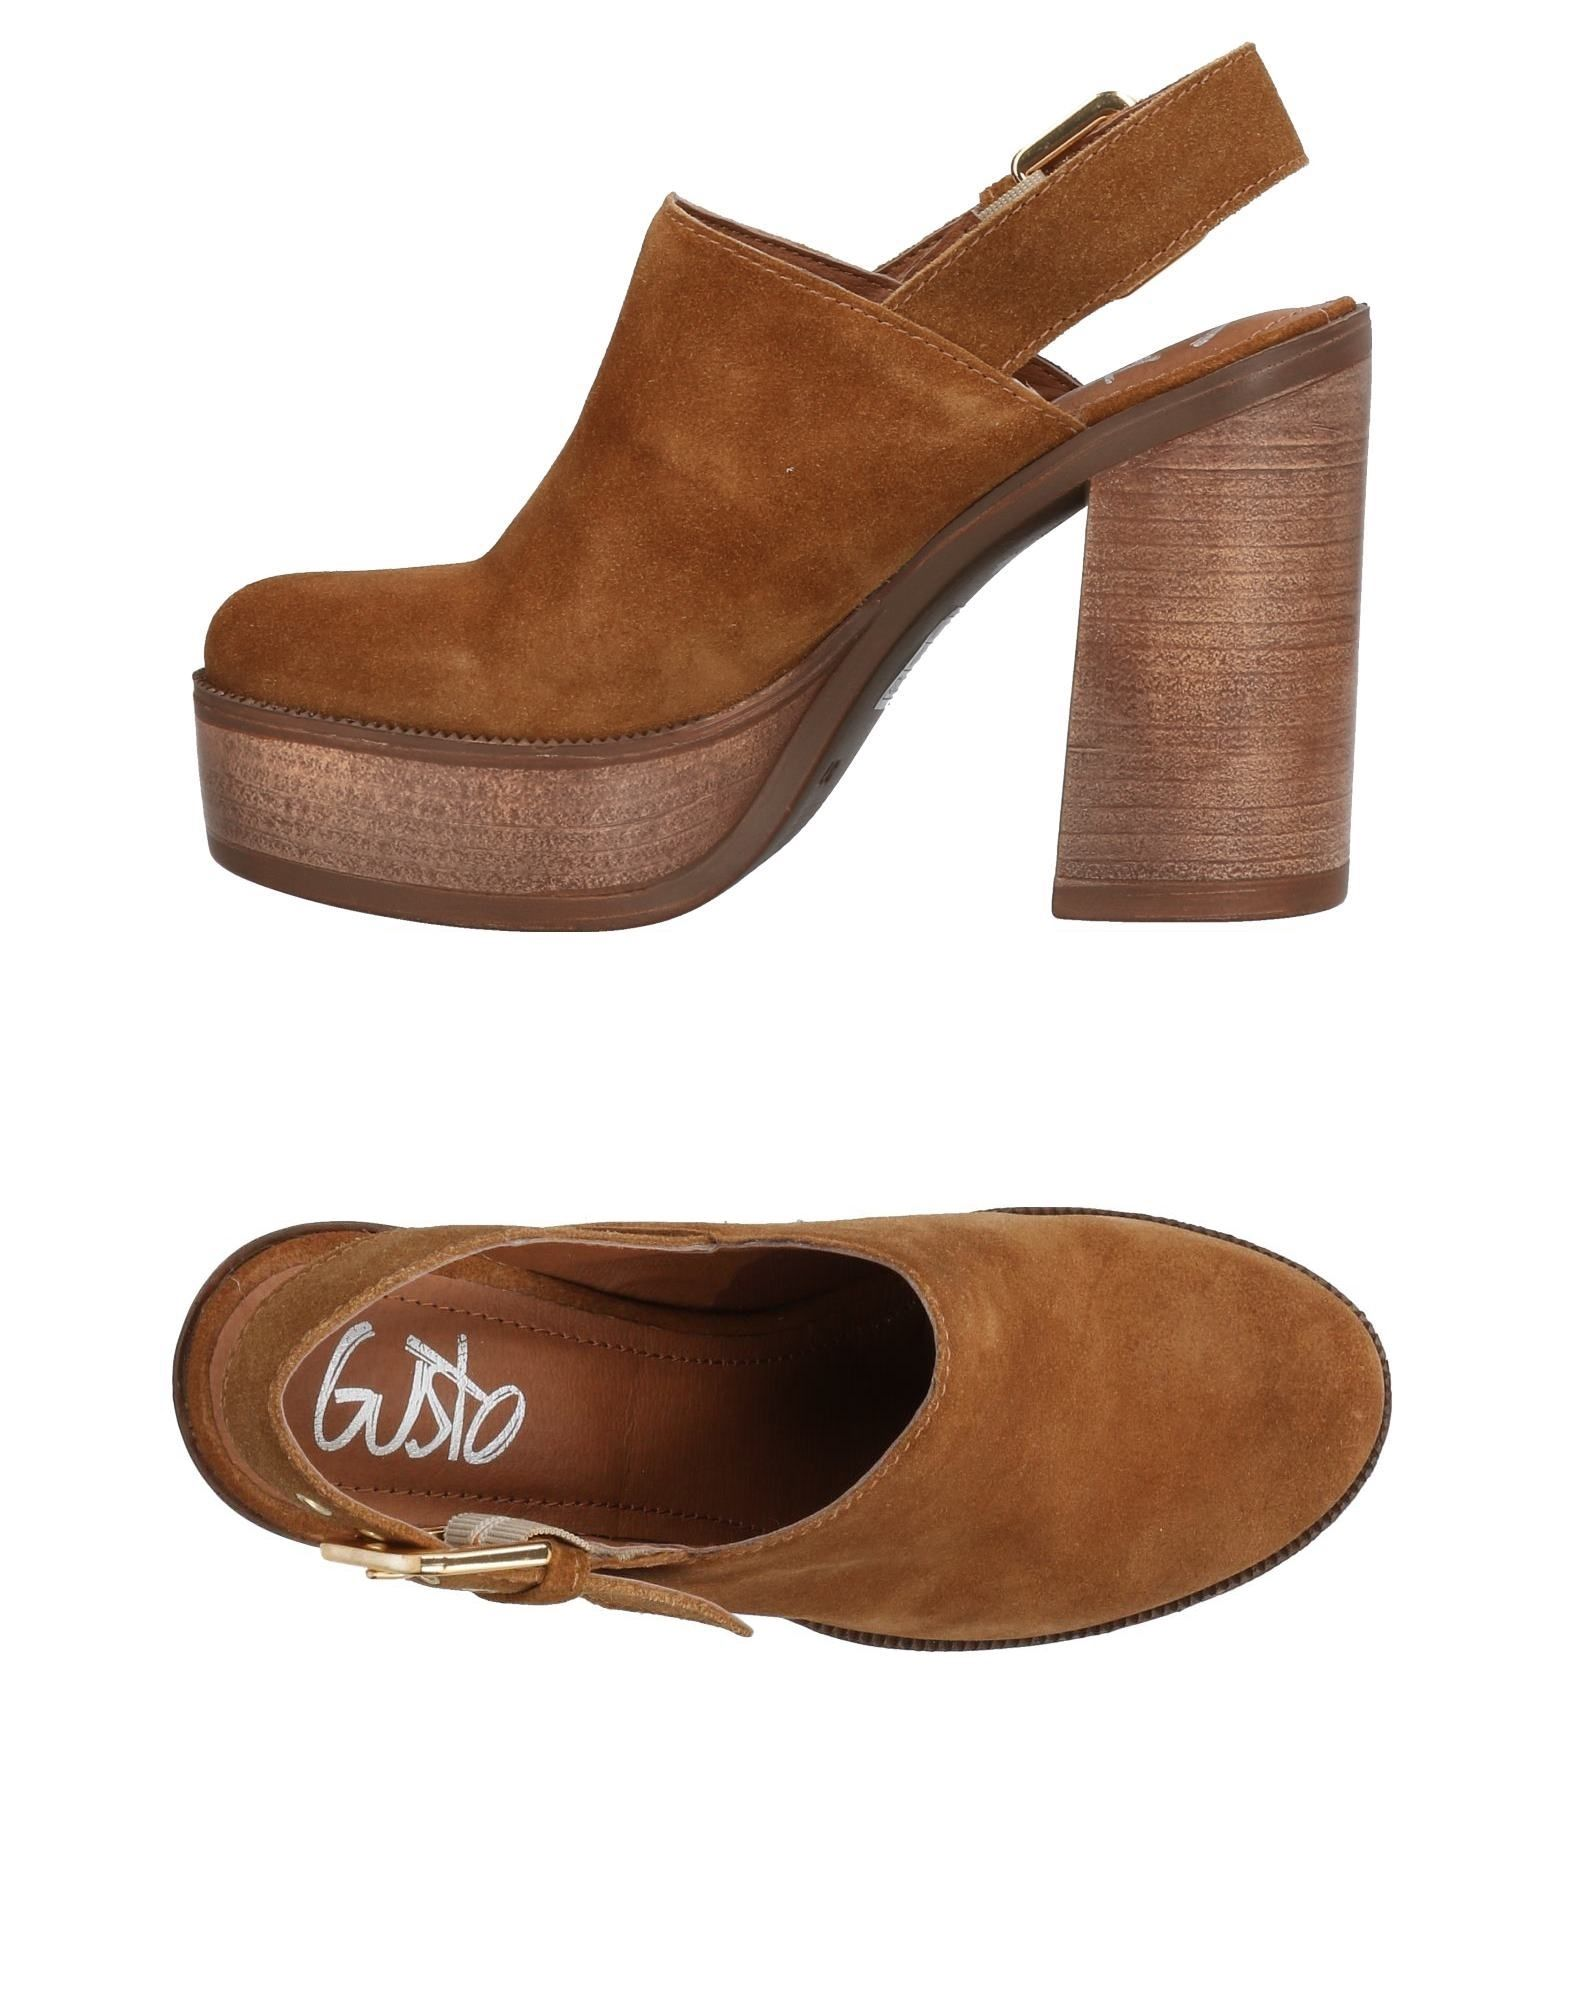 Mules Gusto Femme - Mules Gusto sur